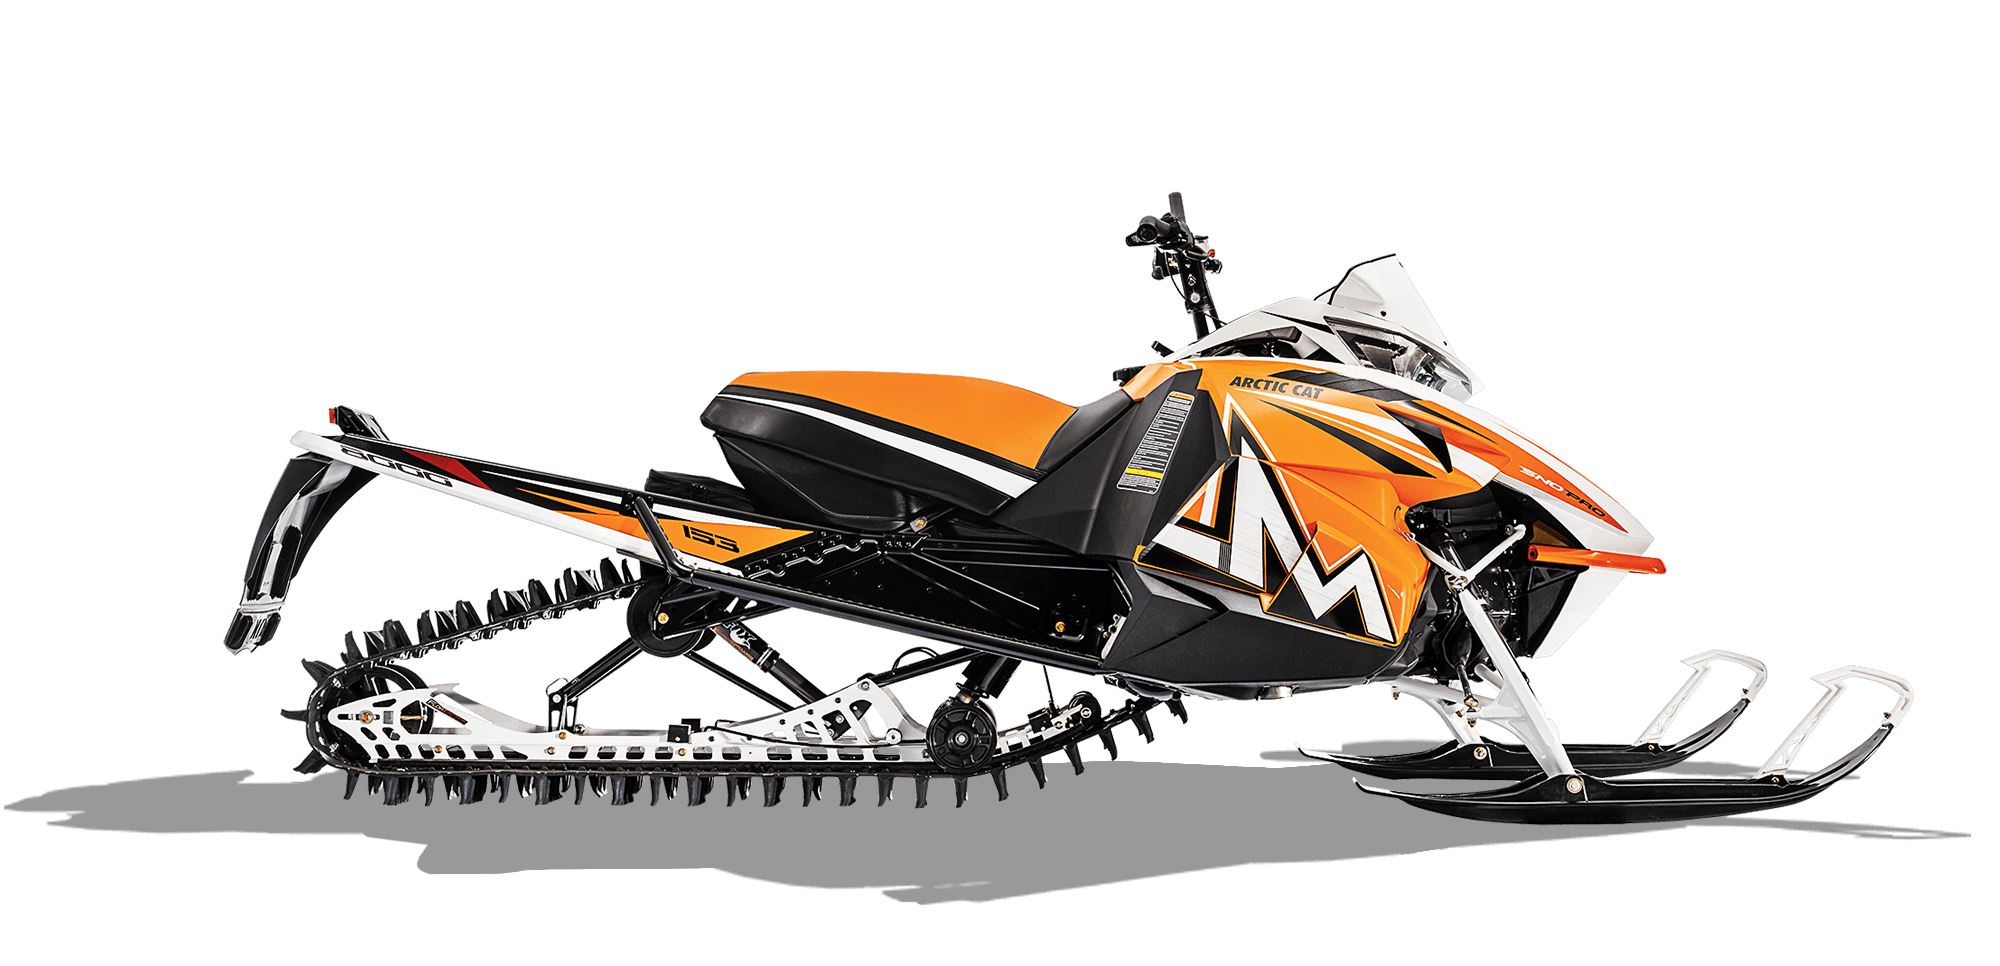 Artic cat snowmobile clipart black and white banner freeuse 2016 Arctic Cat M 8000 153